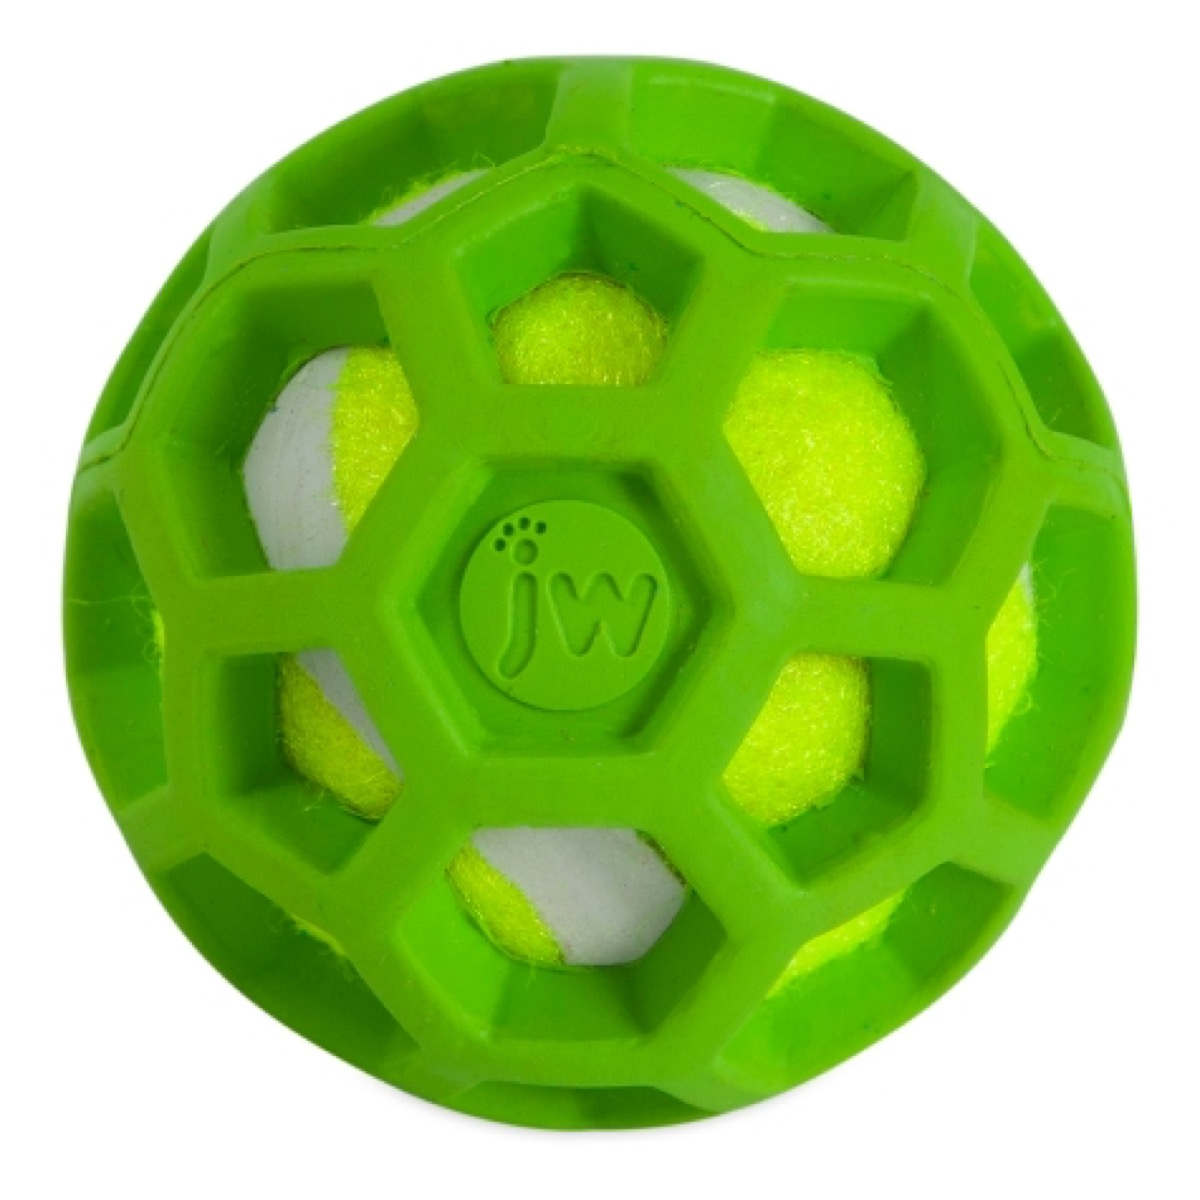 green dog ball, best chew toys for puppies